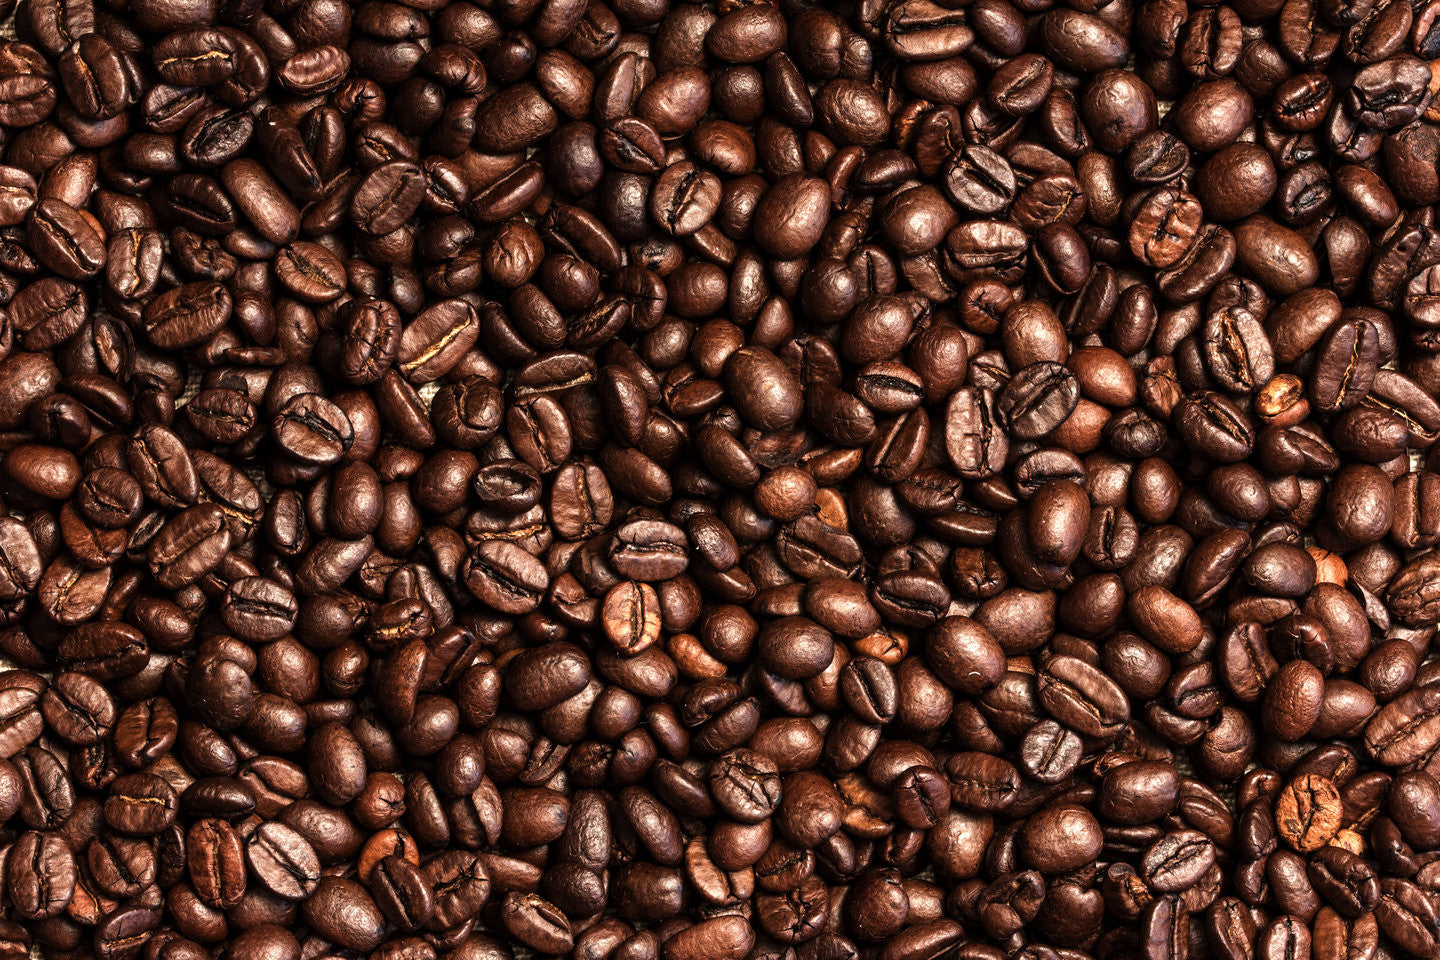 Today we take a look at Ethiopian Sidamo coffee beans